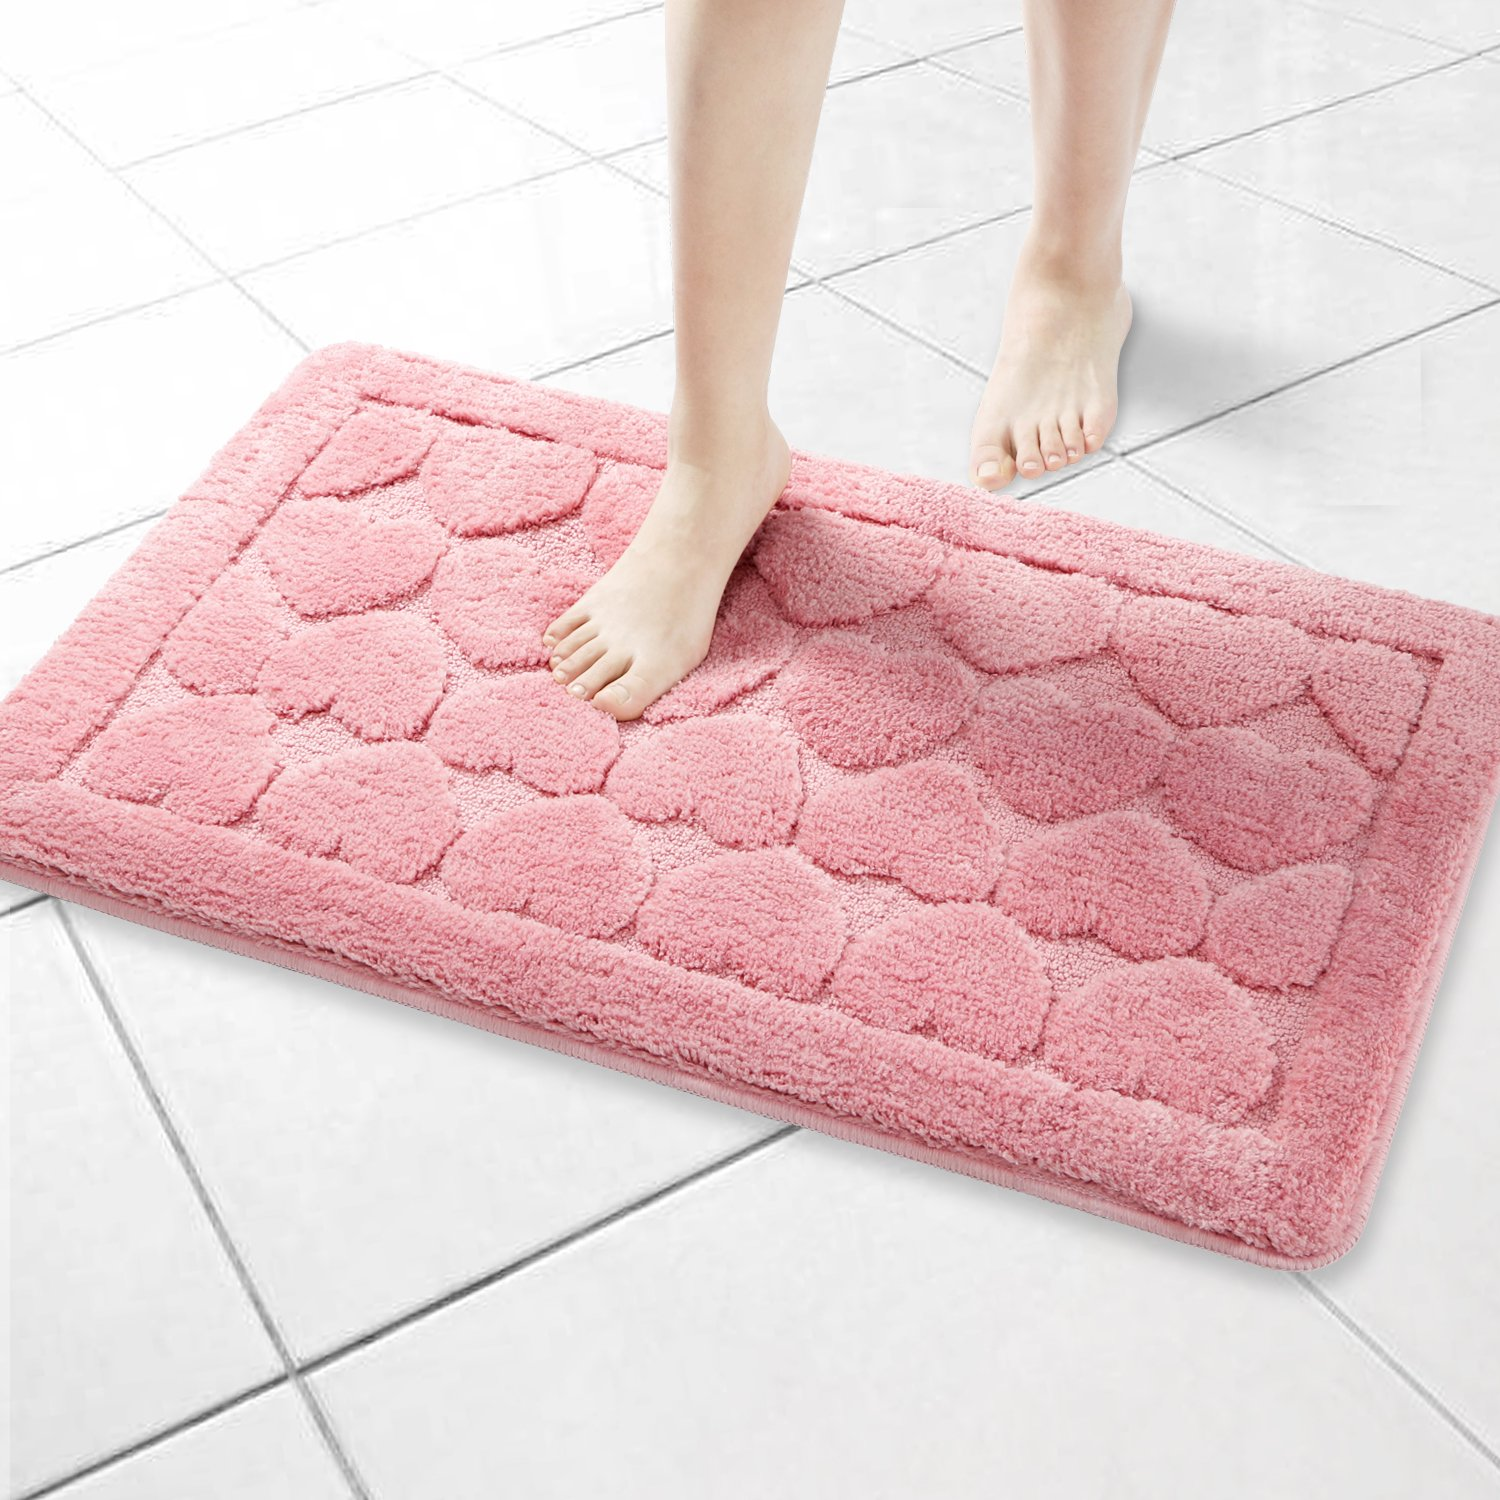 Seloom Super Absorbent Soft Heart Shaped Bath Rug Mat with Non Skid Baking, Perfect for Bathroom, Sink and Shower (20×32,Pink)